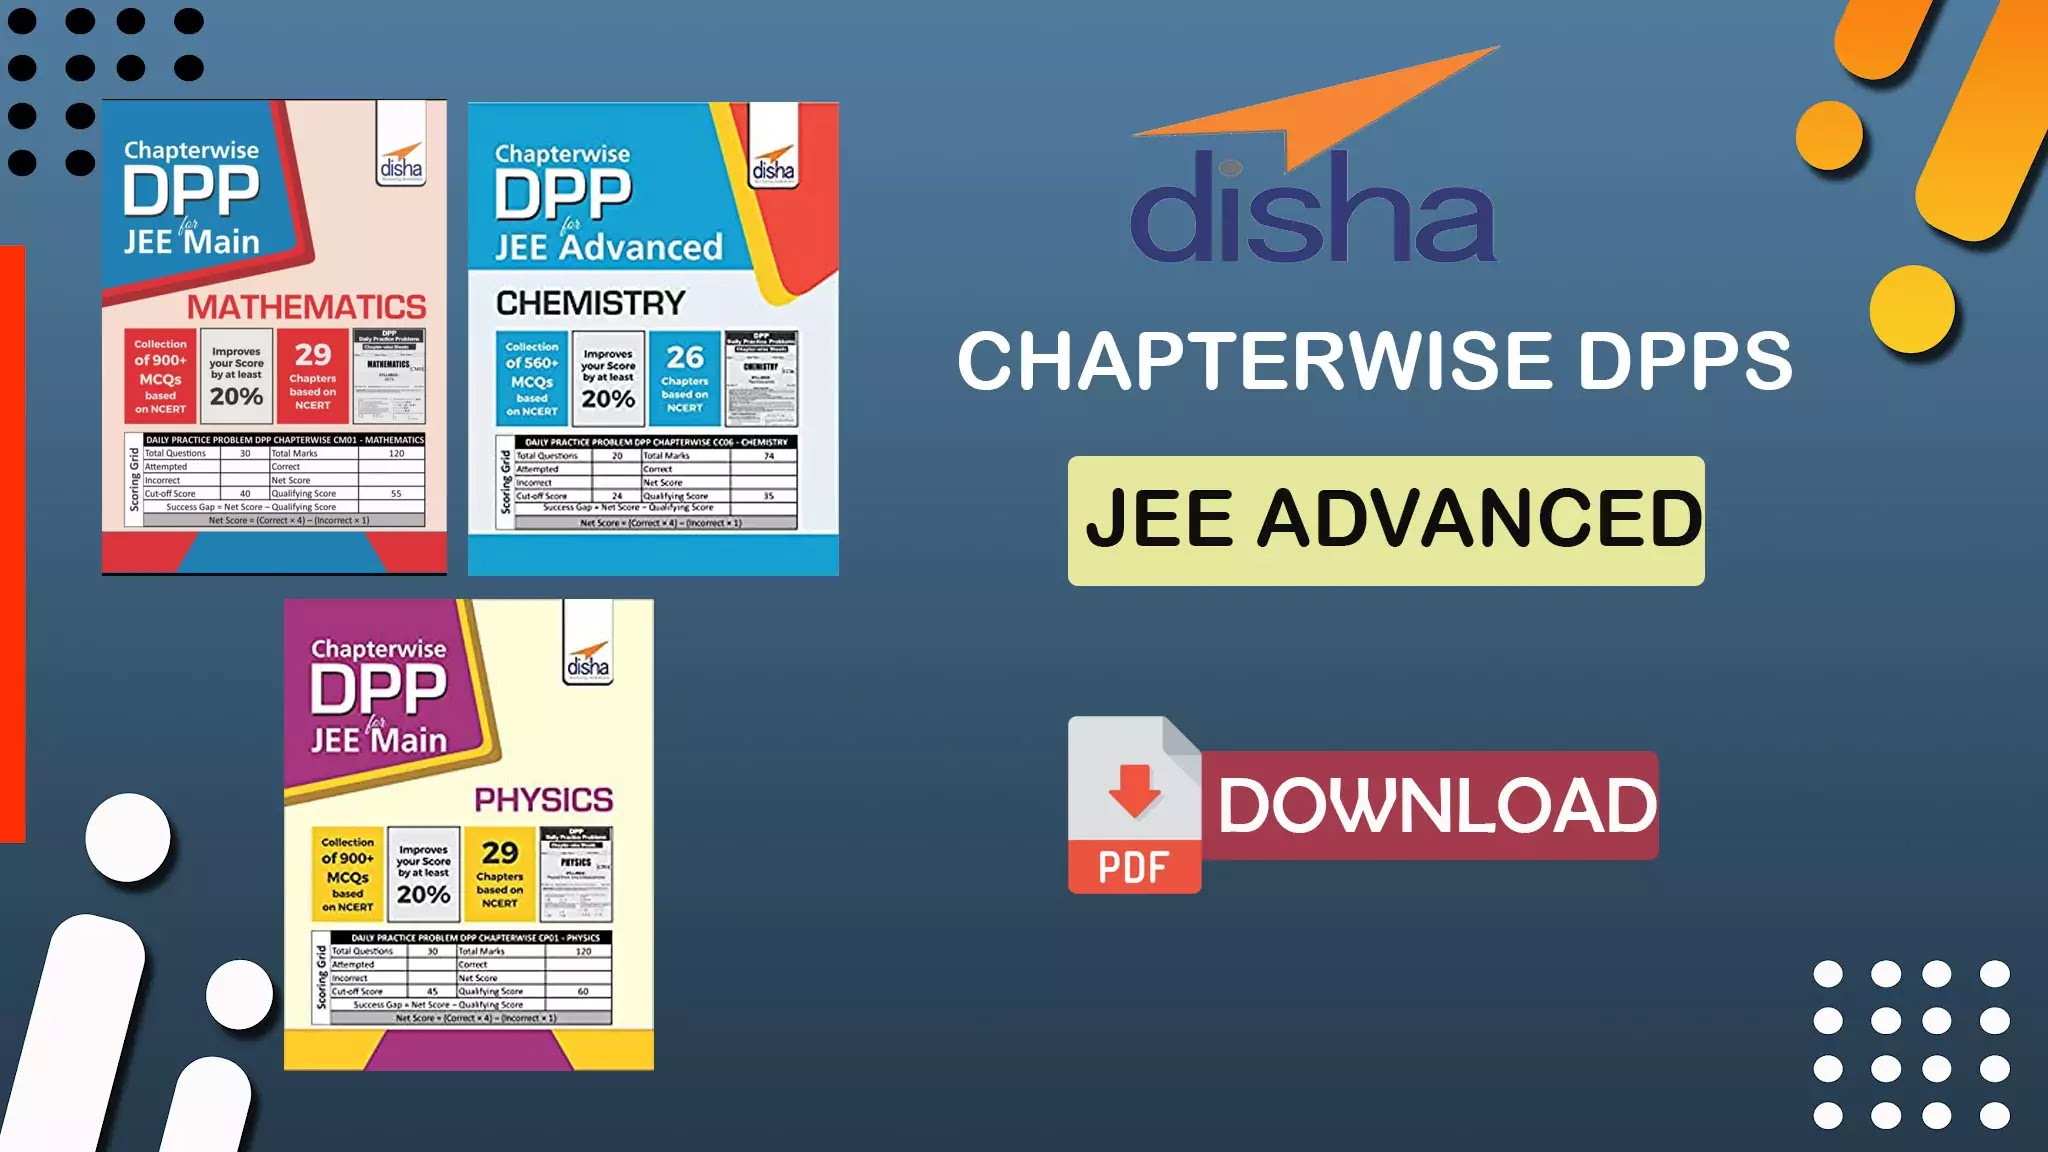 Disha Chapterwise DPPs for JEE Advanced